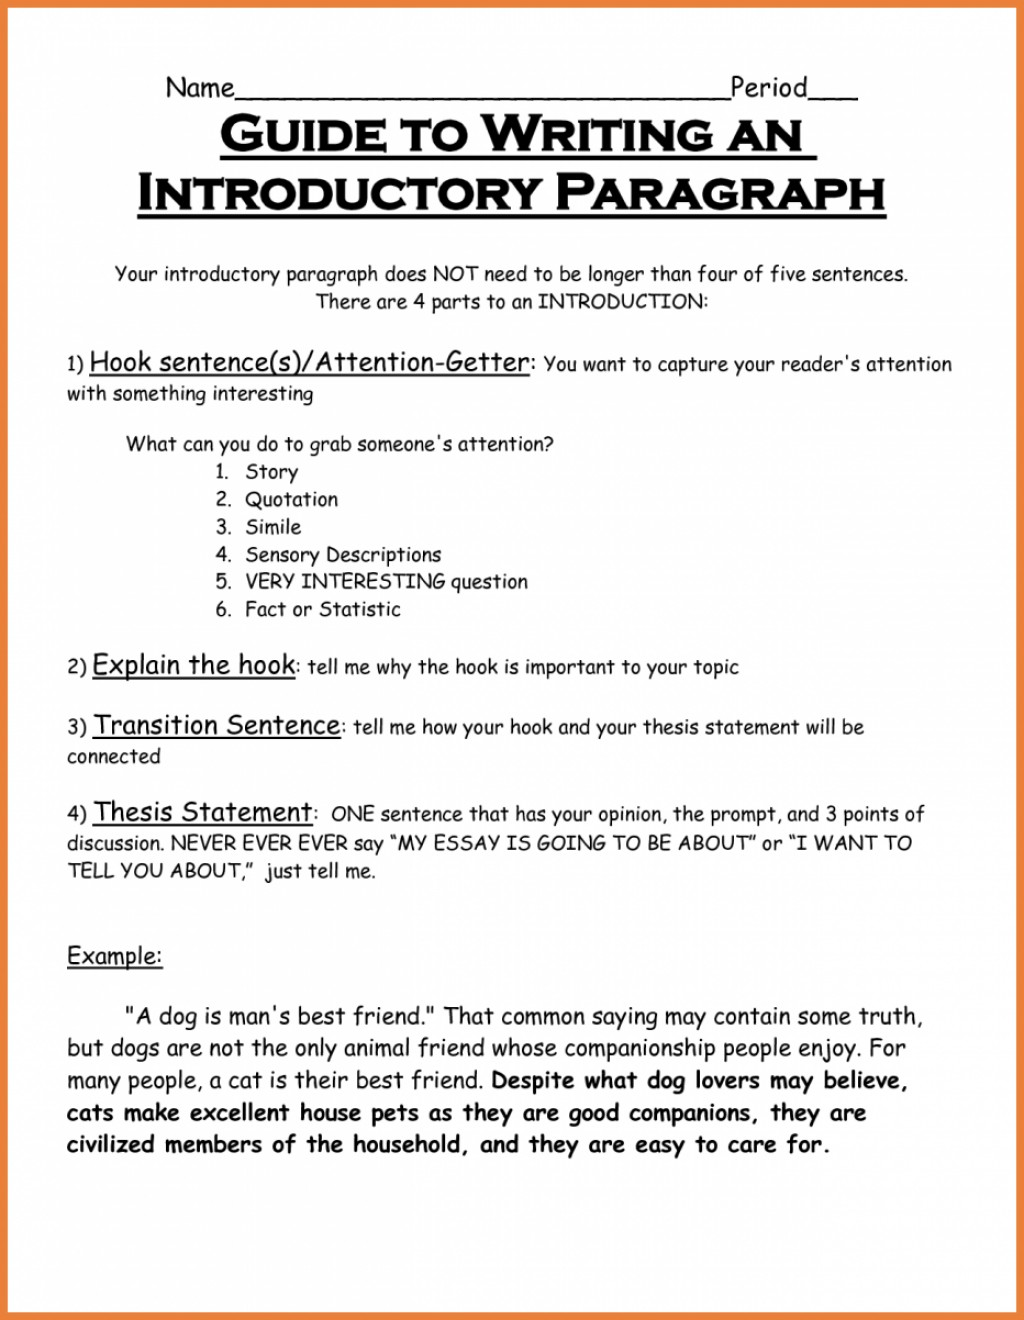 013 How Many Sentences Are In Essay Best A Much Make Paragraph An 250 Word Large